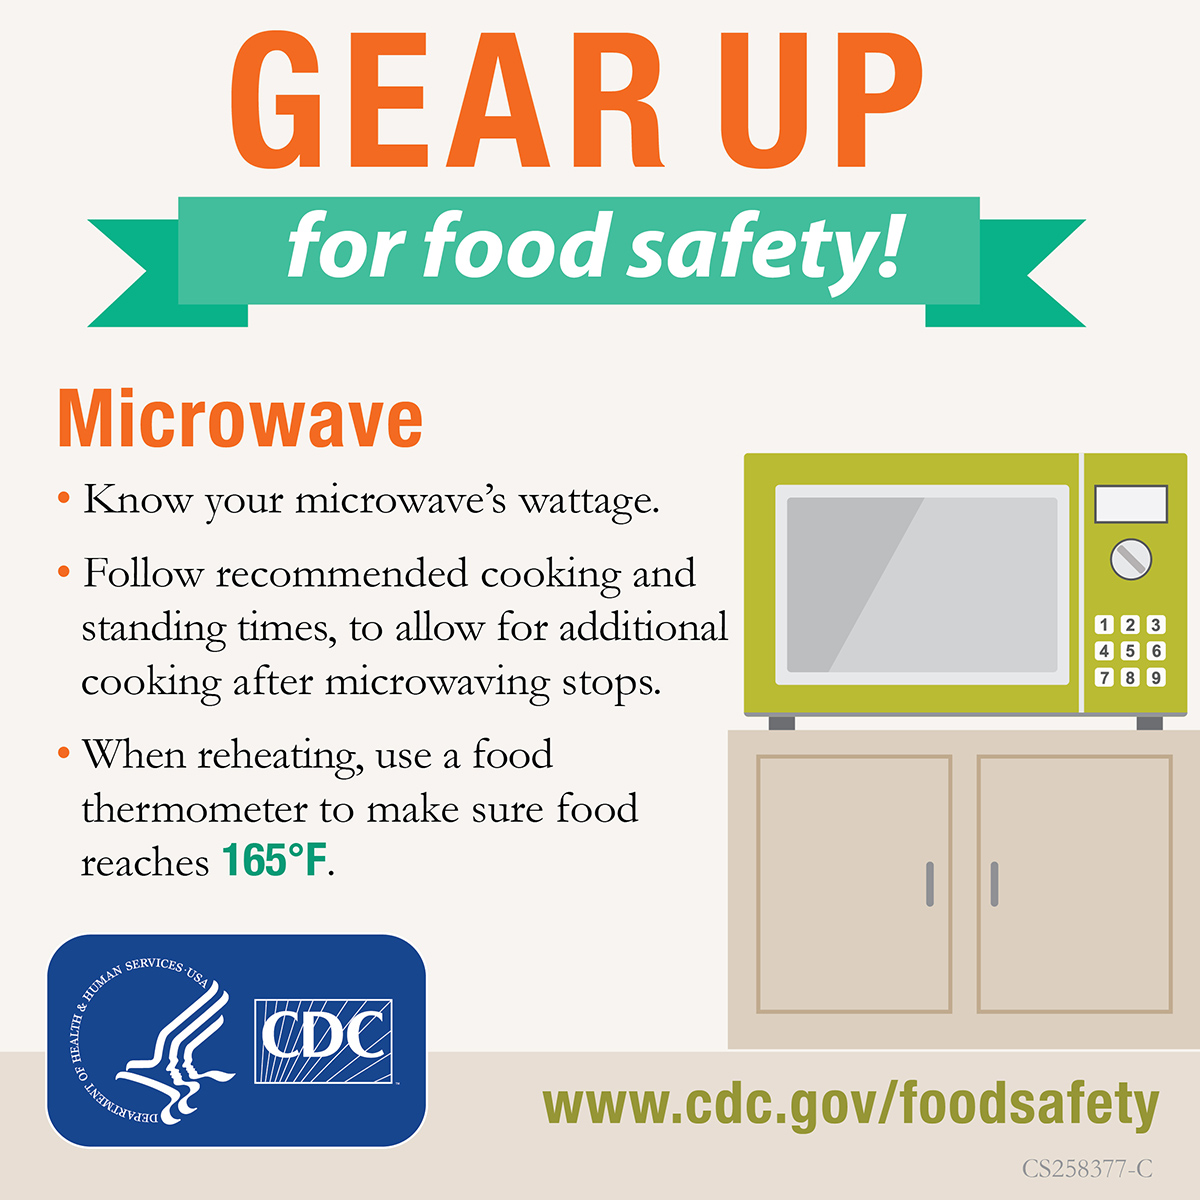 Know your microwave's wattage. Check inside the door, owner's manual or manufacturer's website. Lower wattage means longer cooking time.Follow recommended cooking and standing